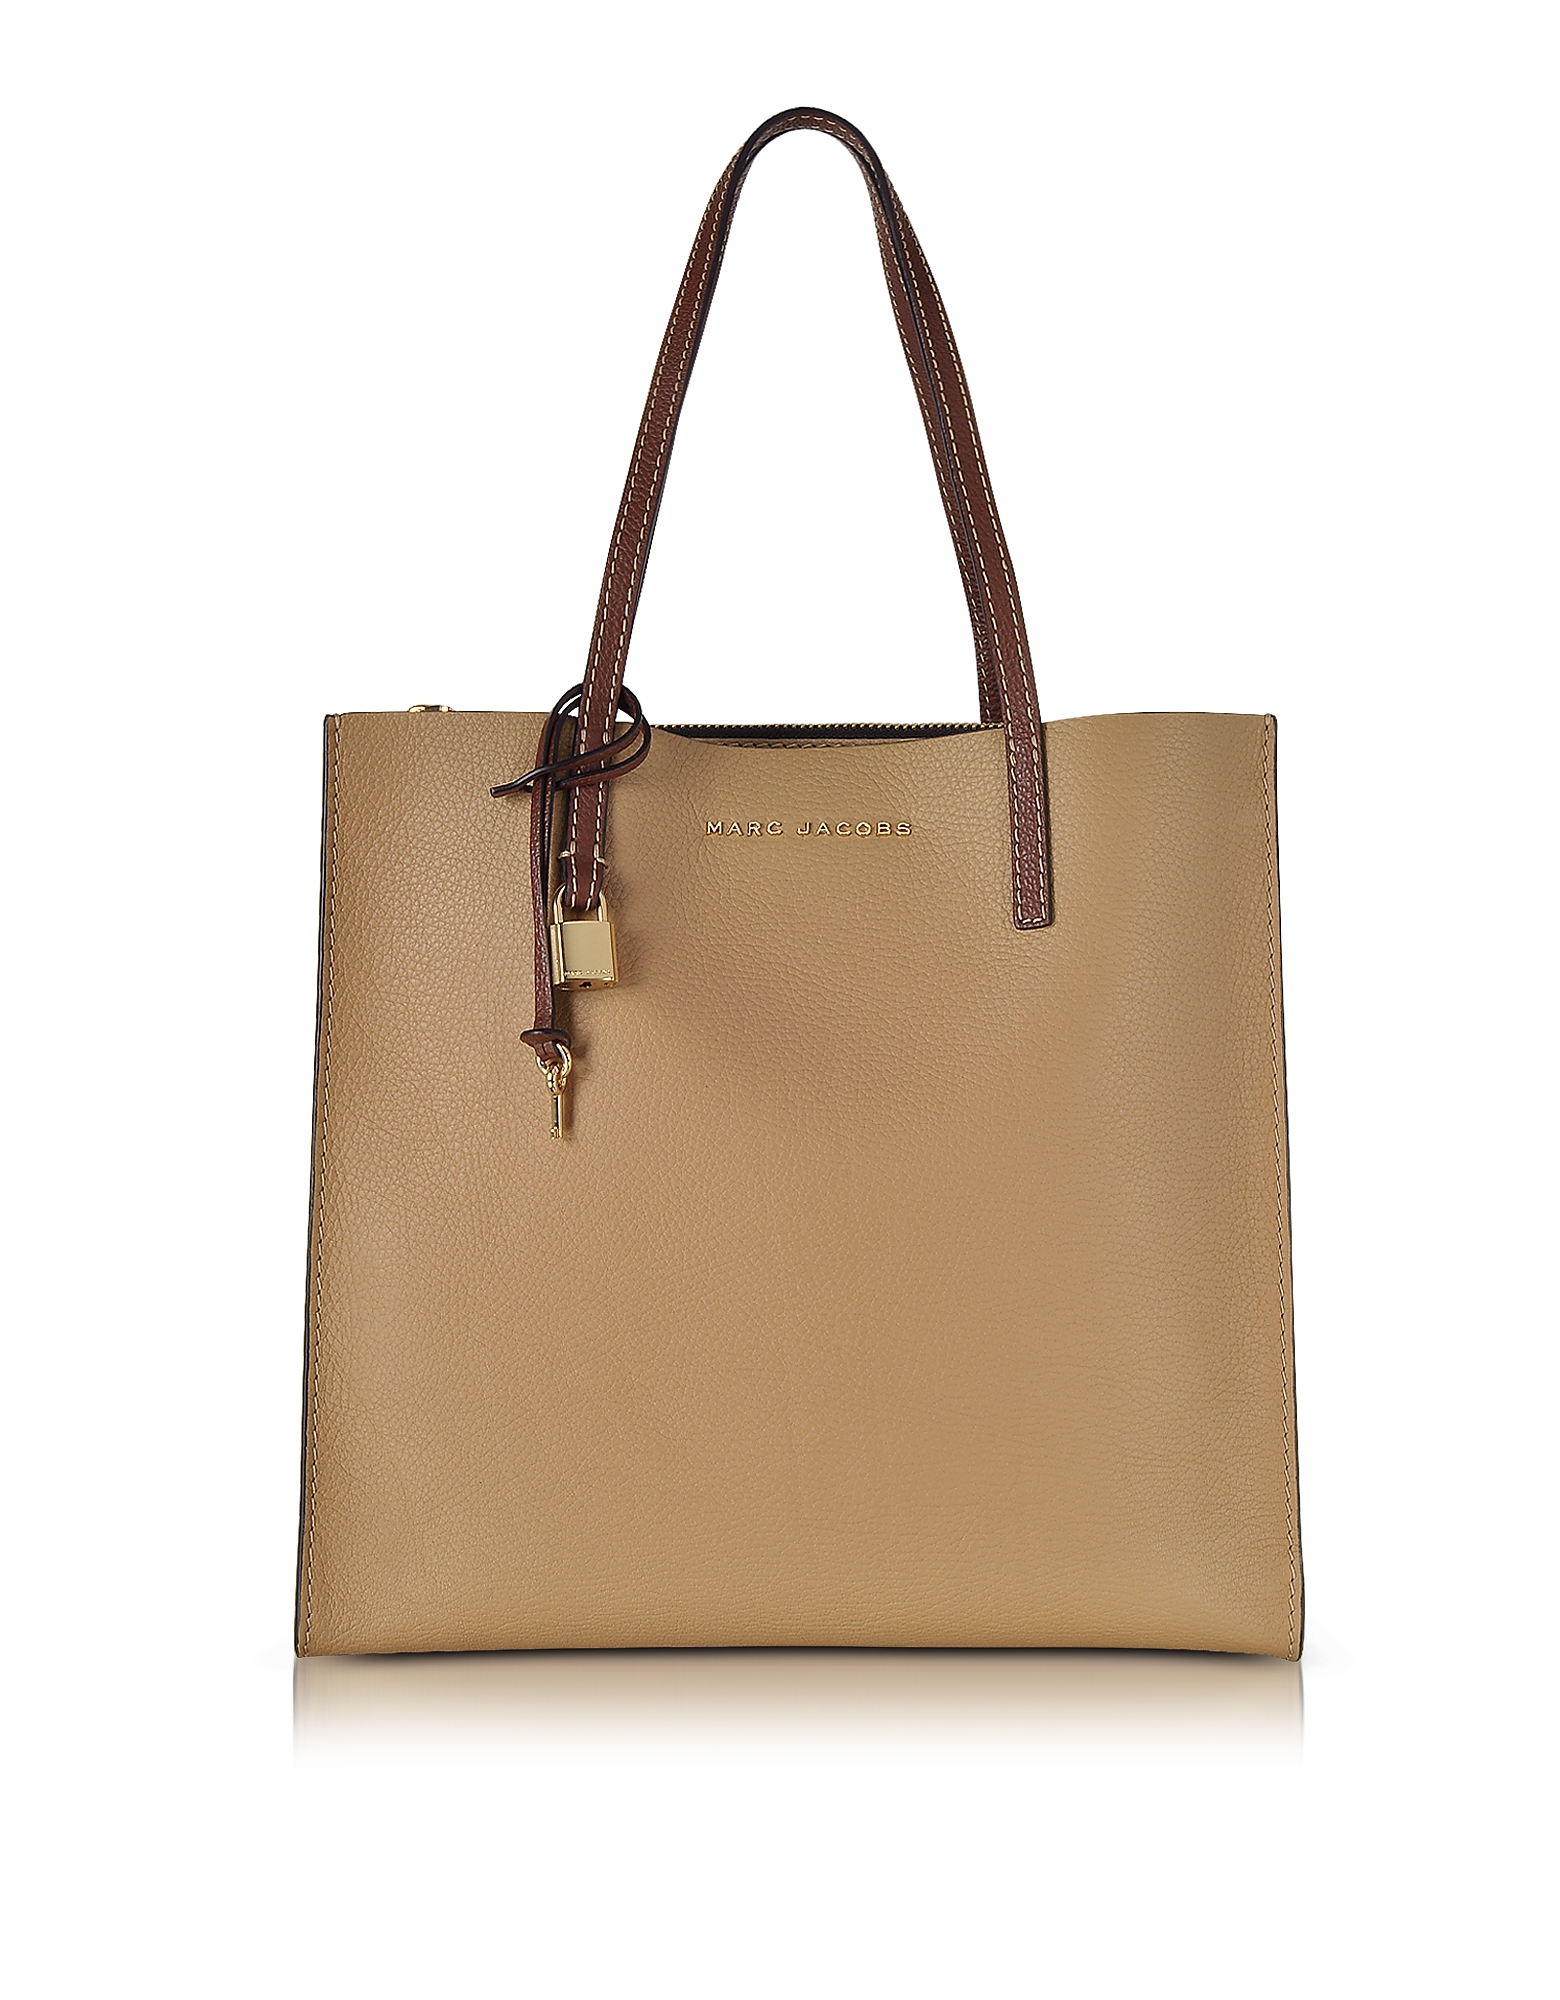 Marc Jacobs Handbags, The Grind Colorblocked Tote Bag